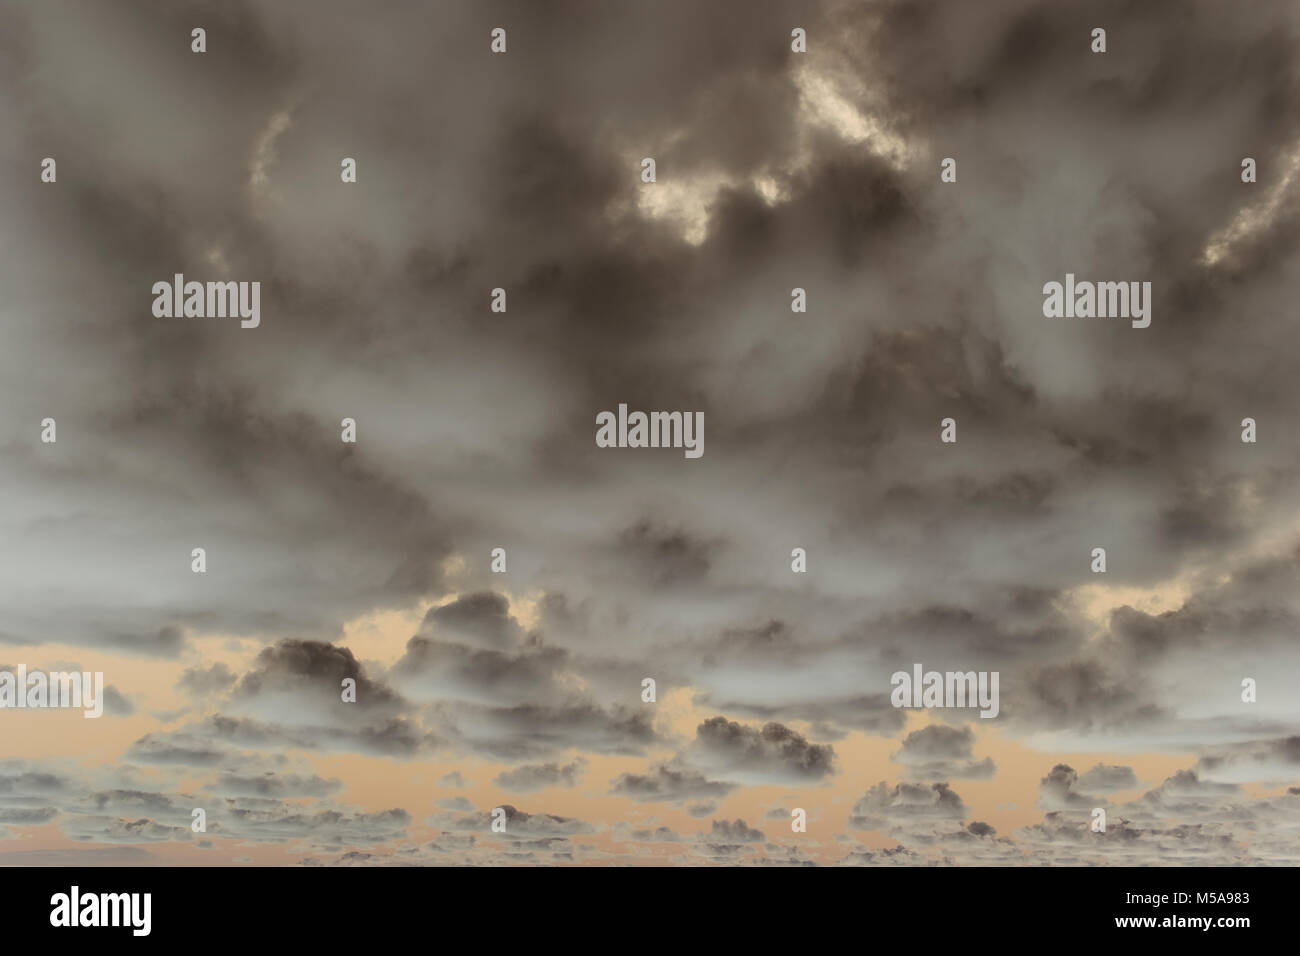 Abstract of overcast sky at dusk. - Stock Image